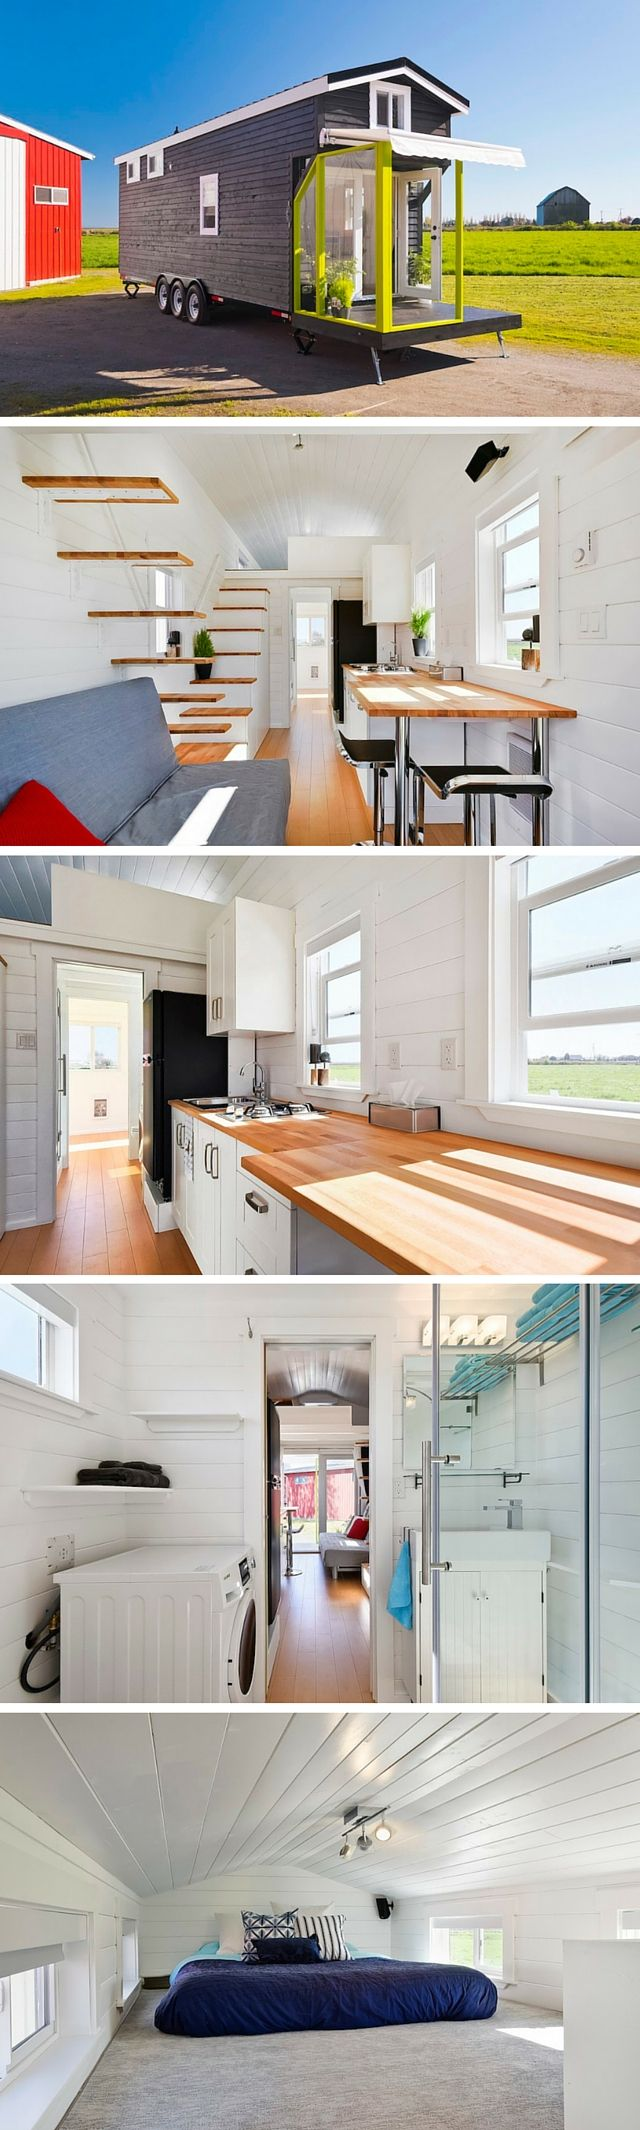 A custom tiny house on wheels from Tiny Living Homes. This 310 sq ft home has two lofts! #containerhome #shippingcontainer